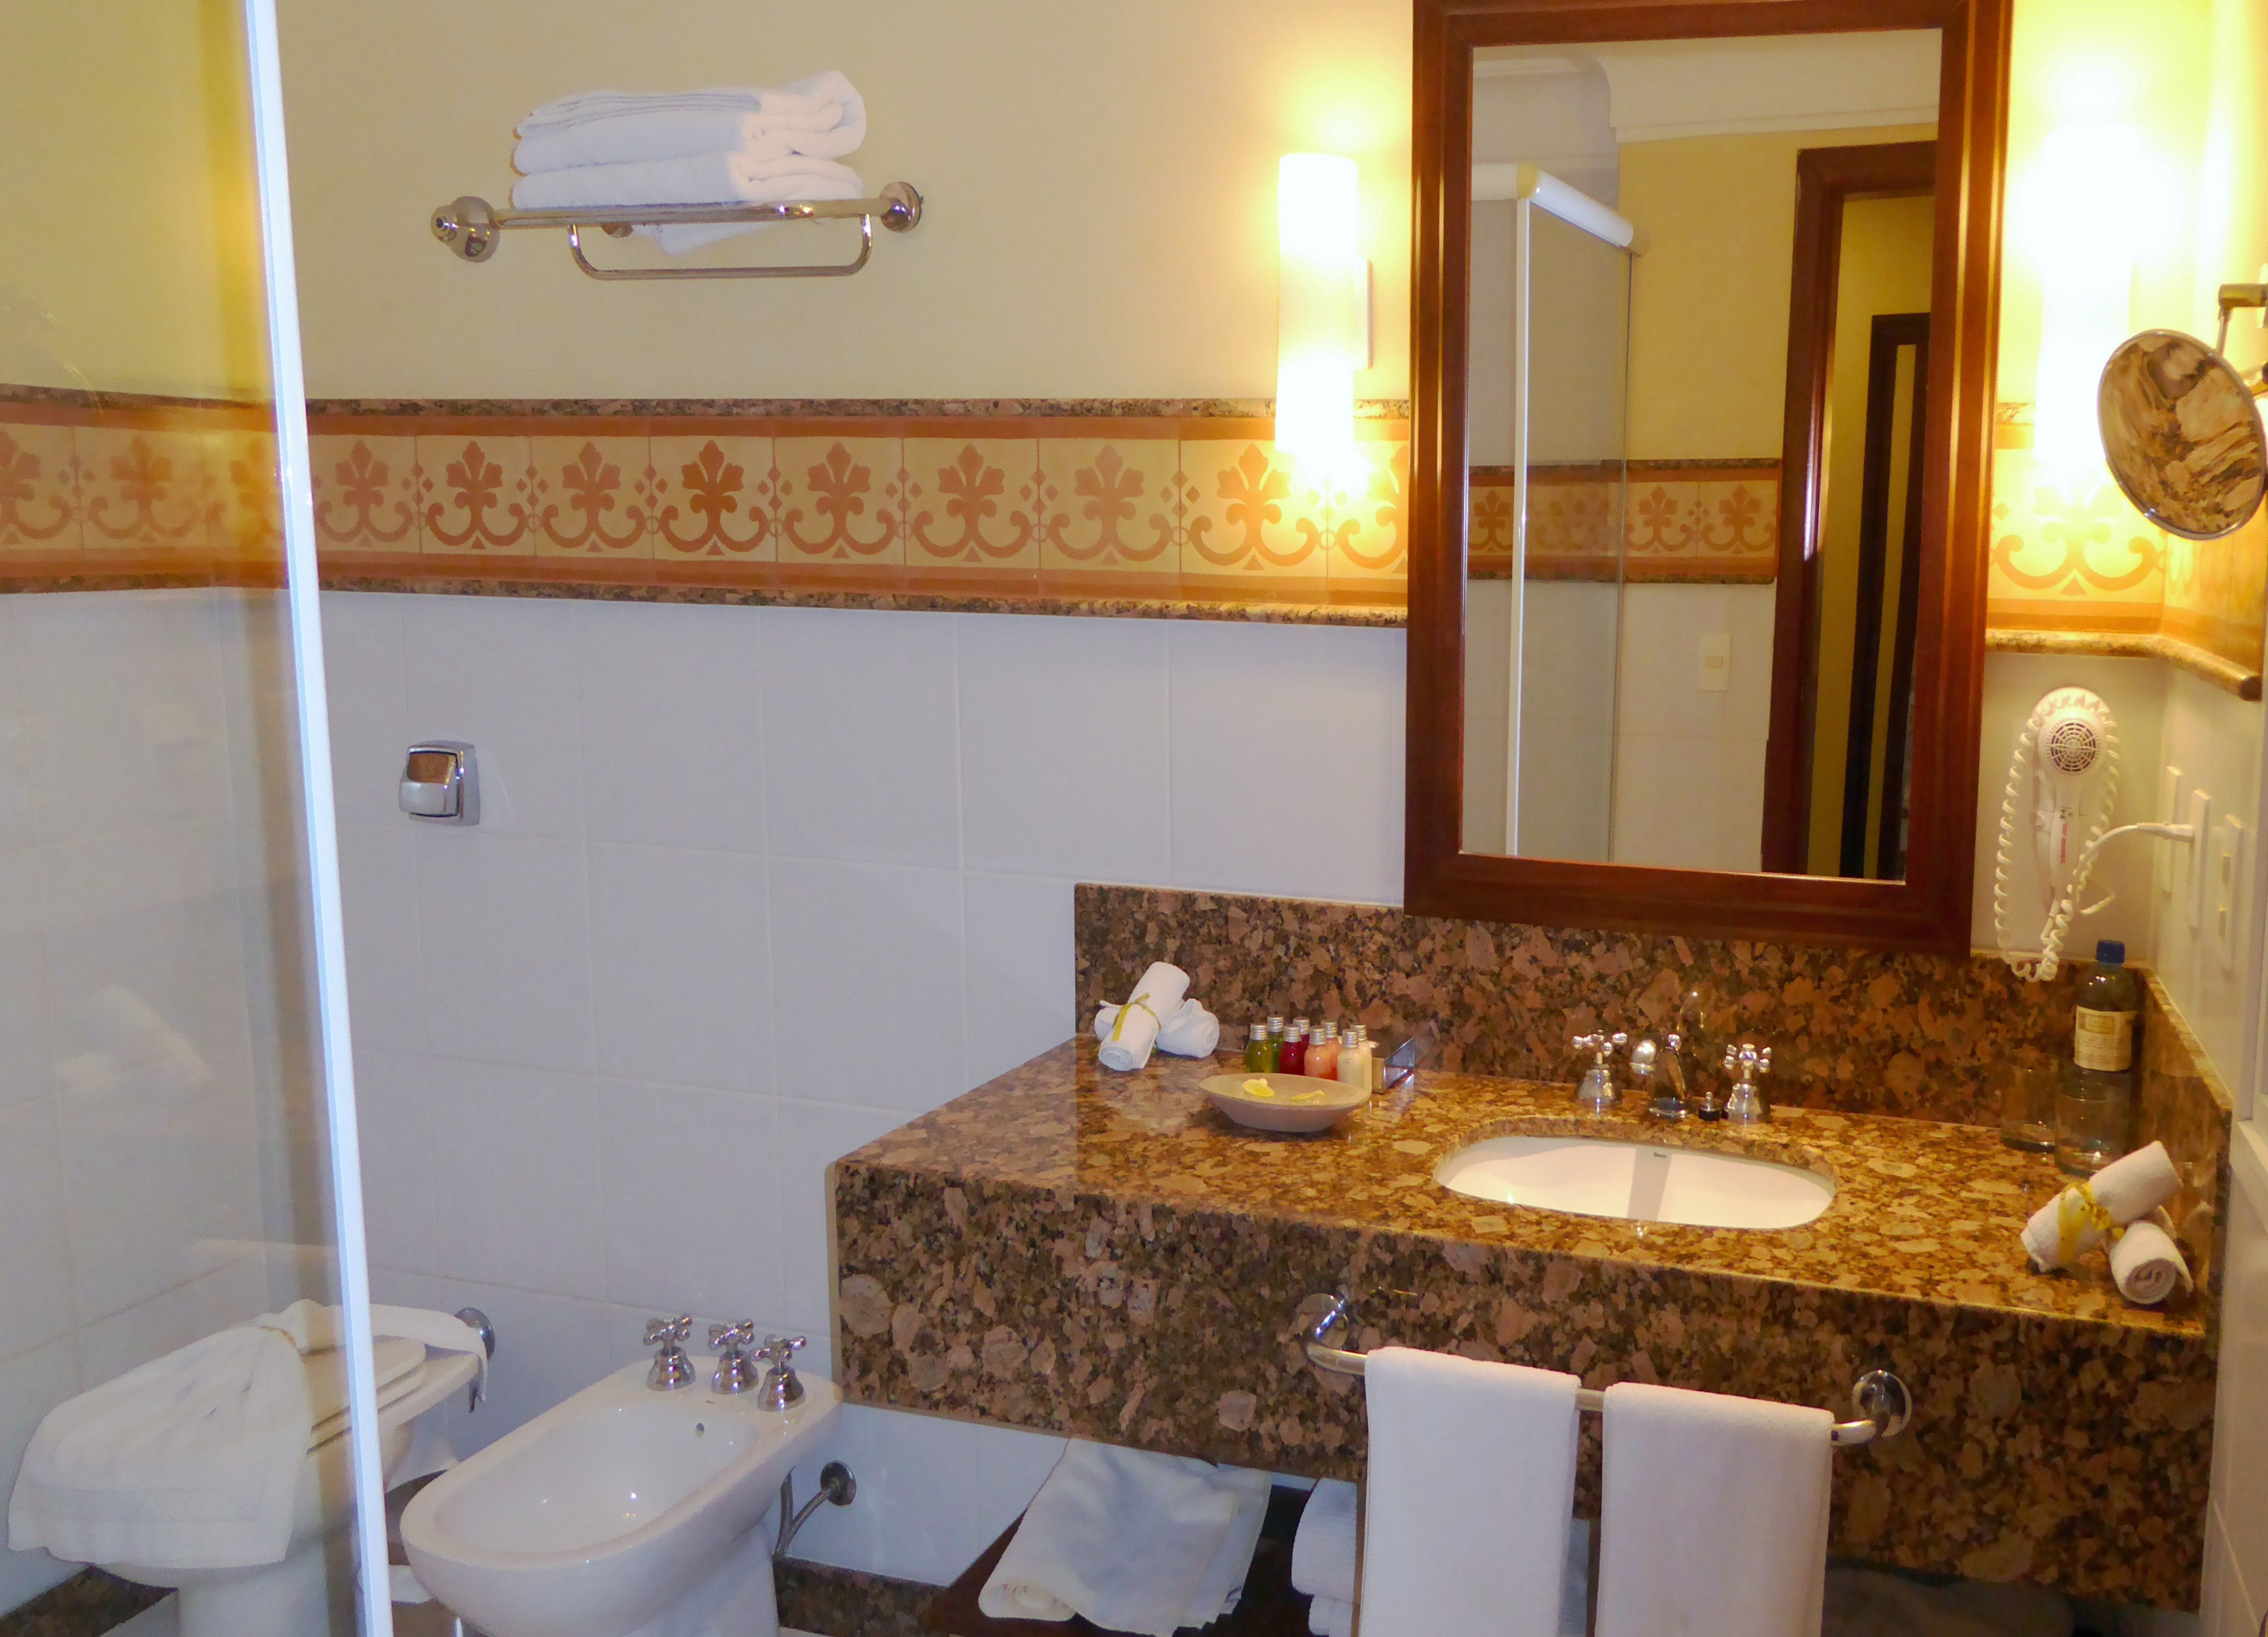 Hotel Casa Amarelindo Standard Room bathroom Shower